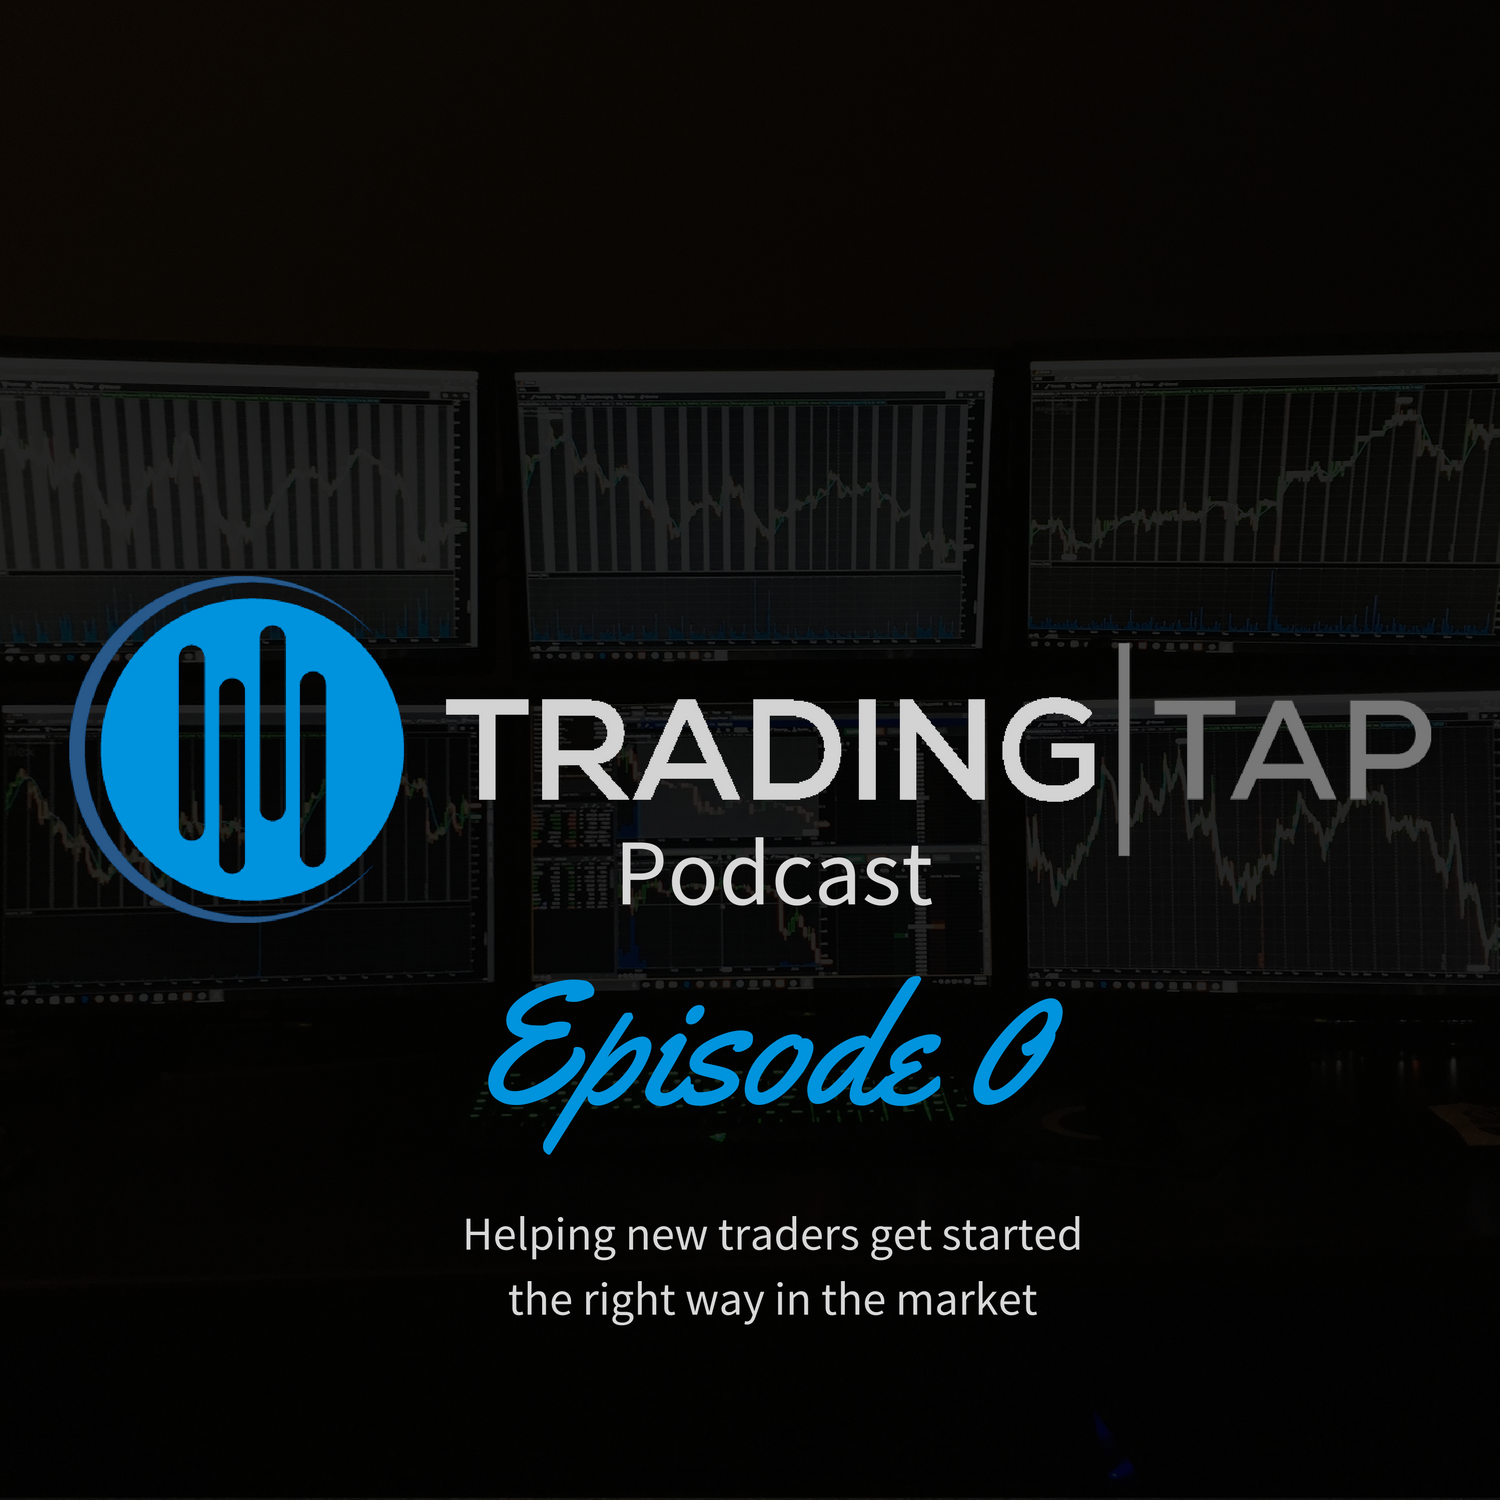 Trading Tap Podcast Episode 0